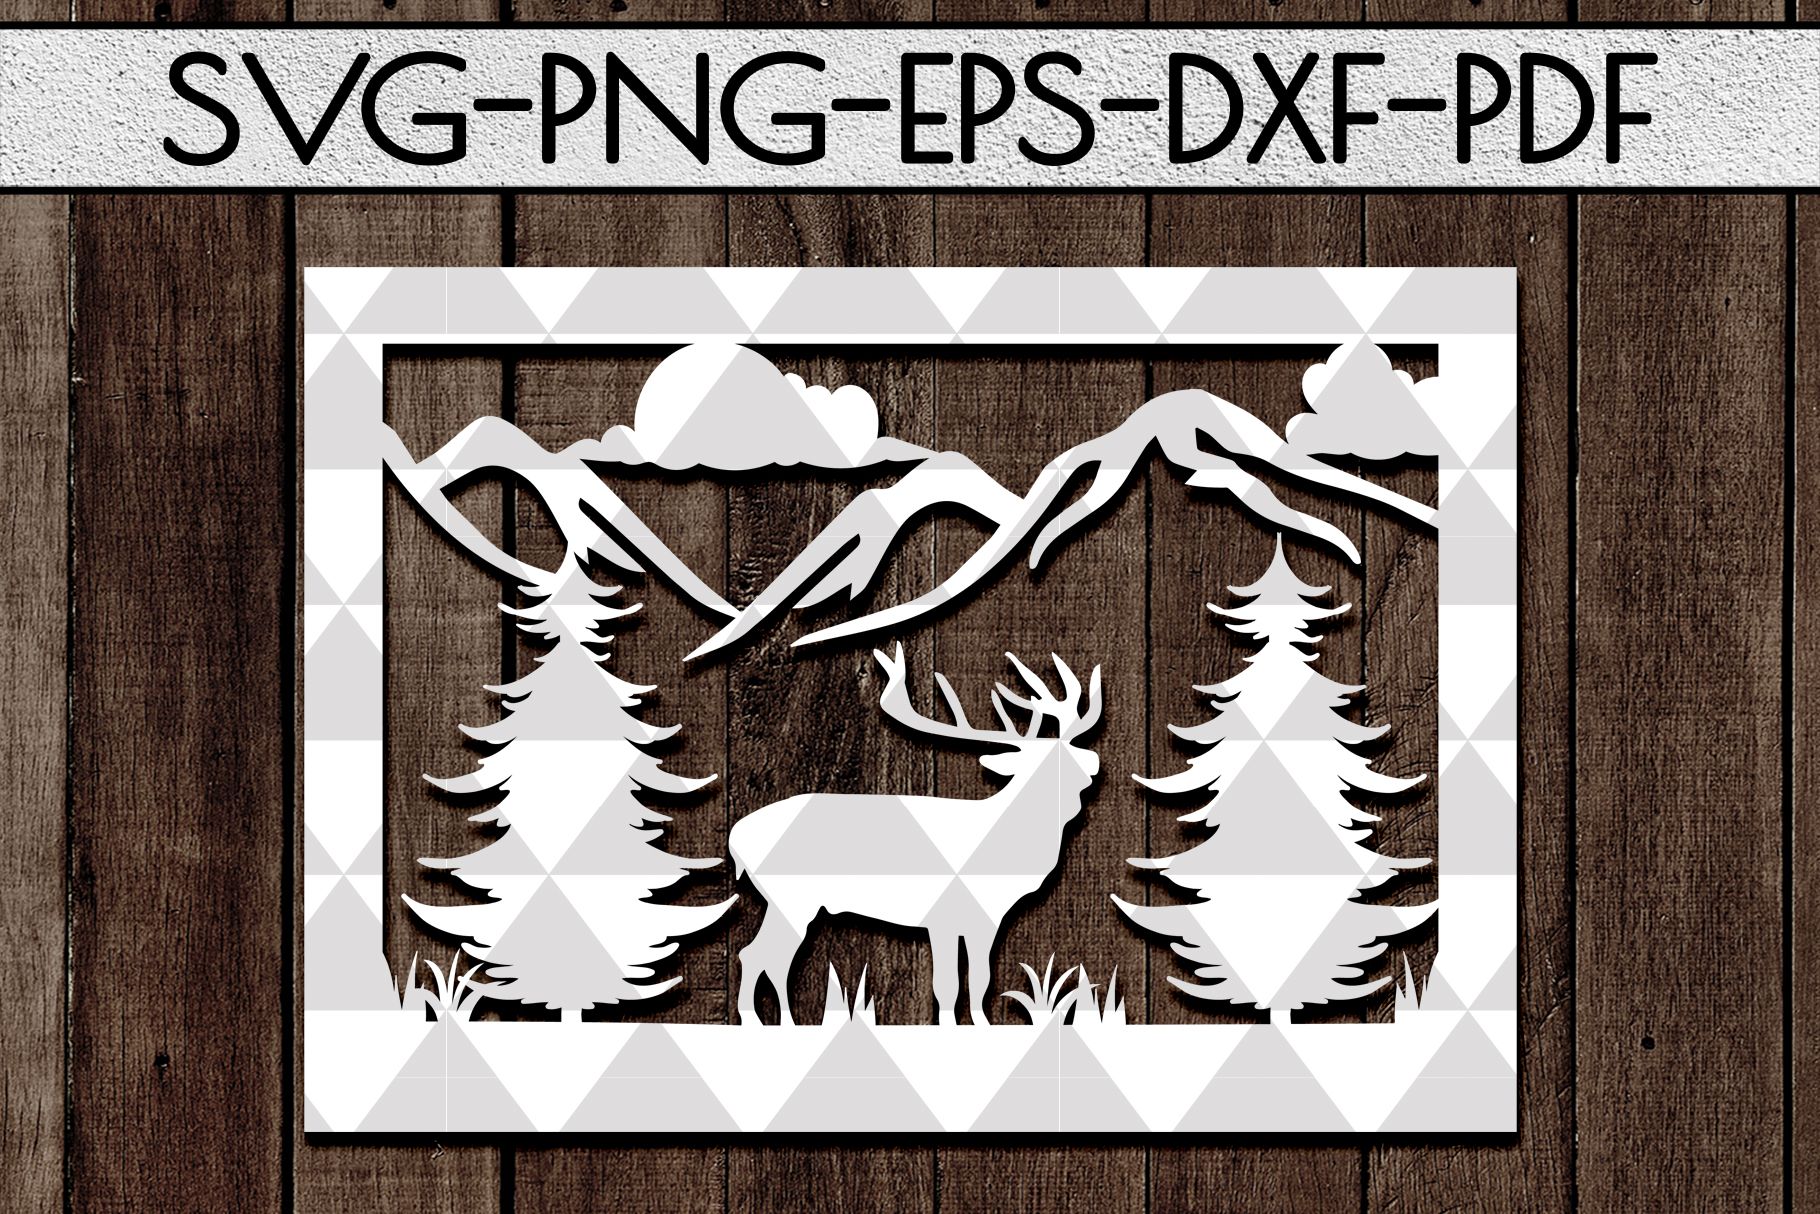 Wild Life Papercut Template, Woodland Adventure Scenery SVG example image 1